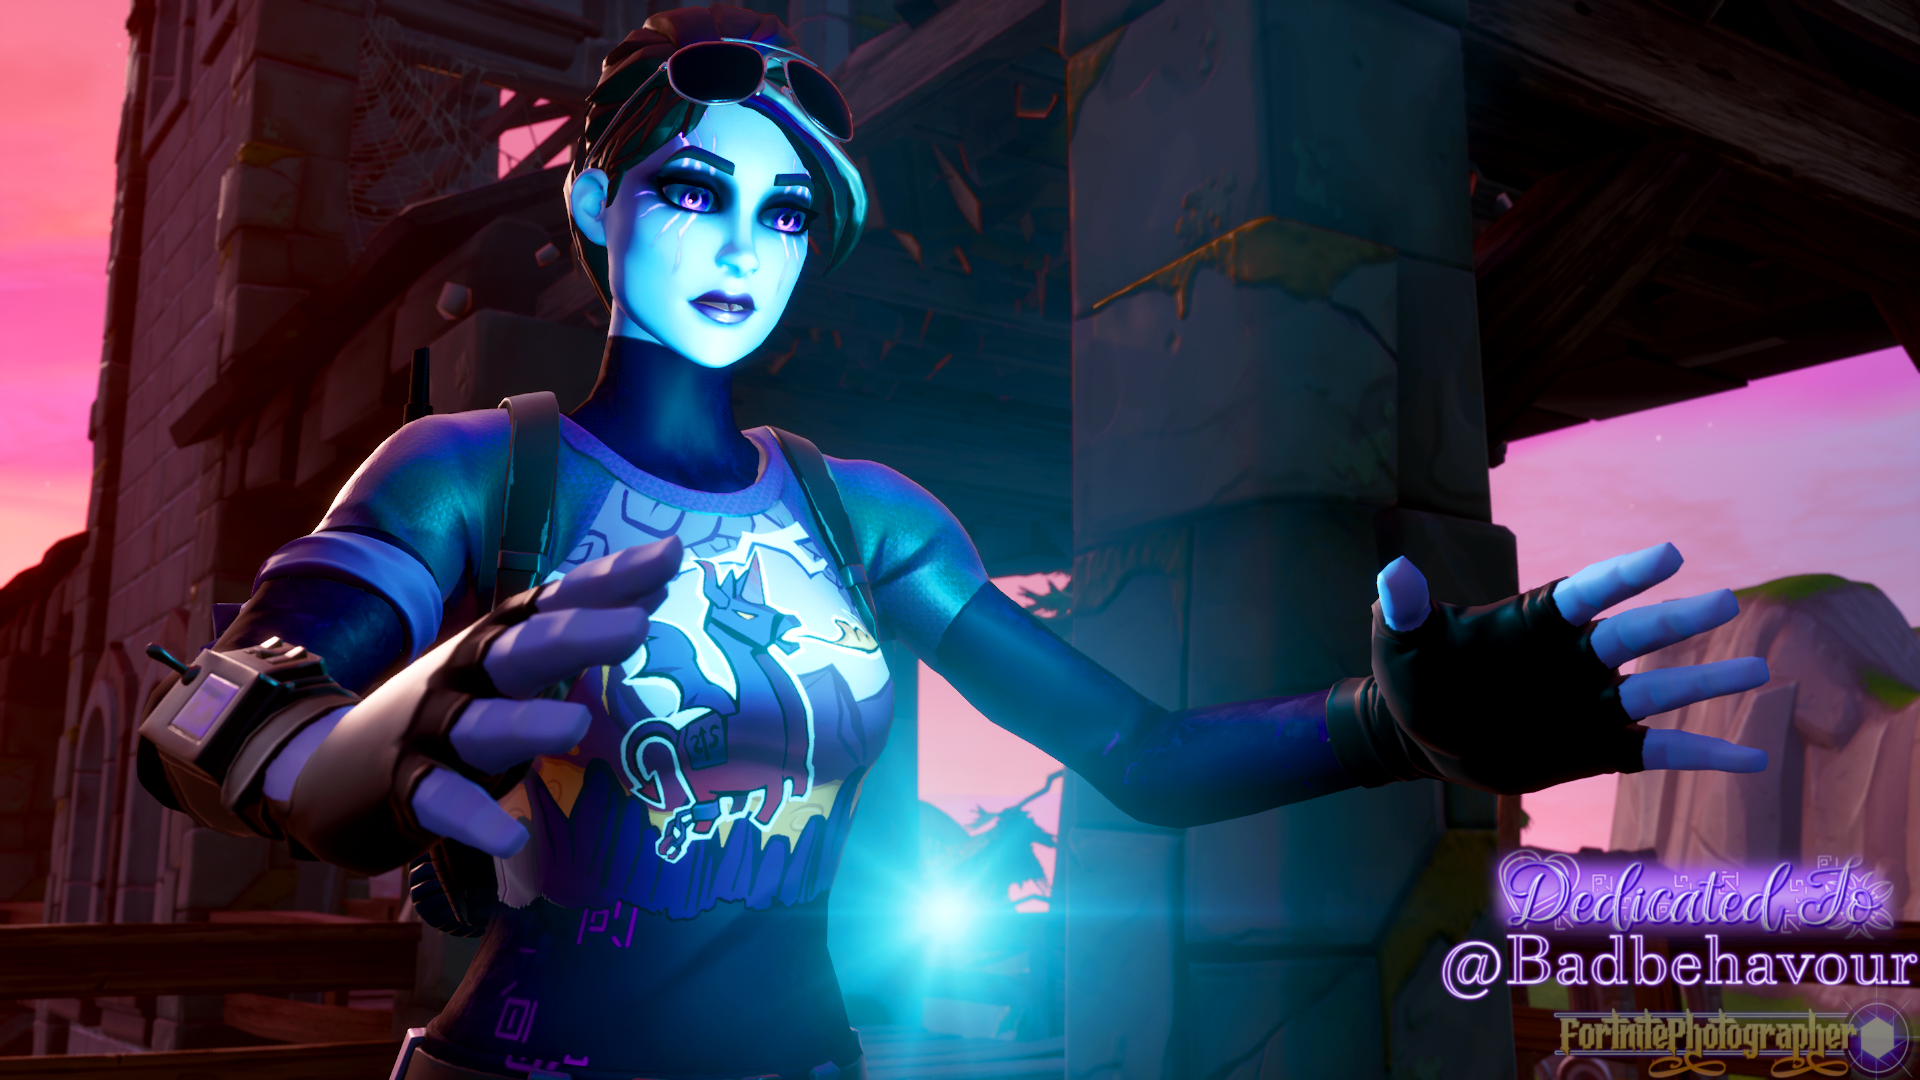 Darkness Prevails Today Is Your Day Badbehavour On Twitter Thanks For The Huge Support Im Glad You Are P Funny Iphone Wallpaper Epic Games Fortnite Art